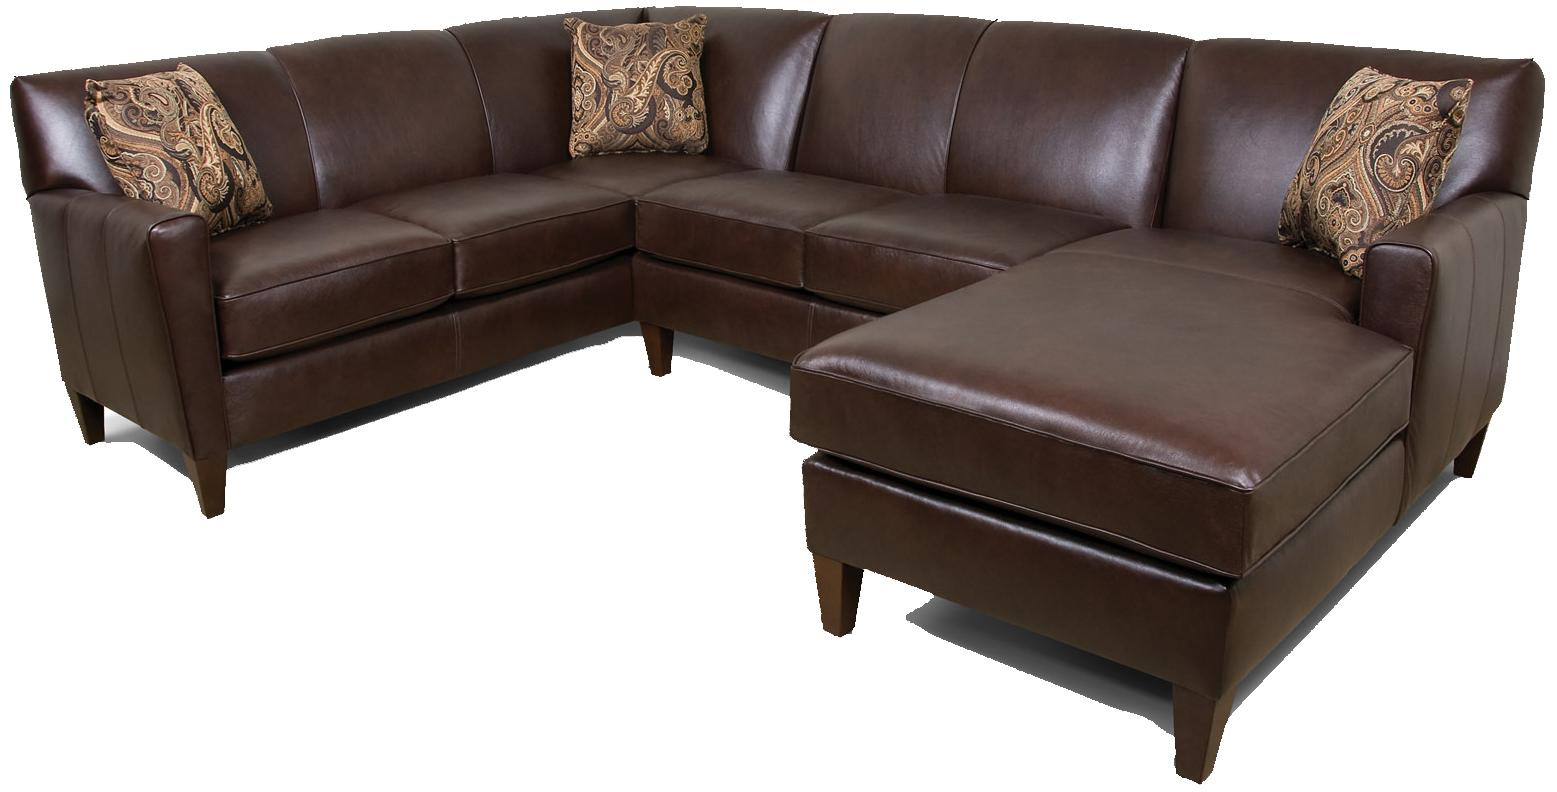 England Lynette 3-Piece Sectional Sofa - Item Number: 620064L+43L+05L